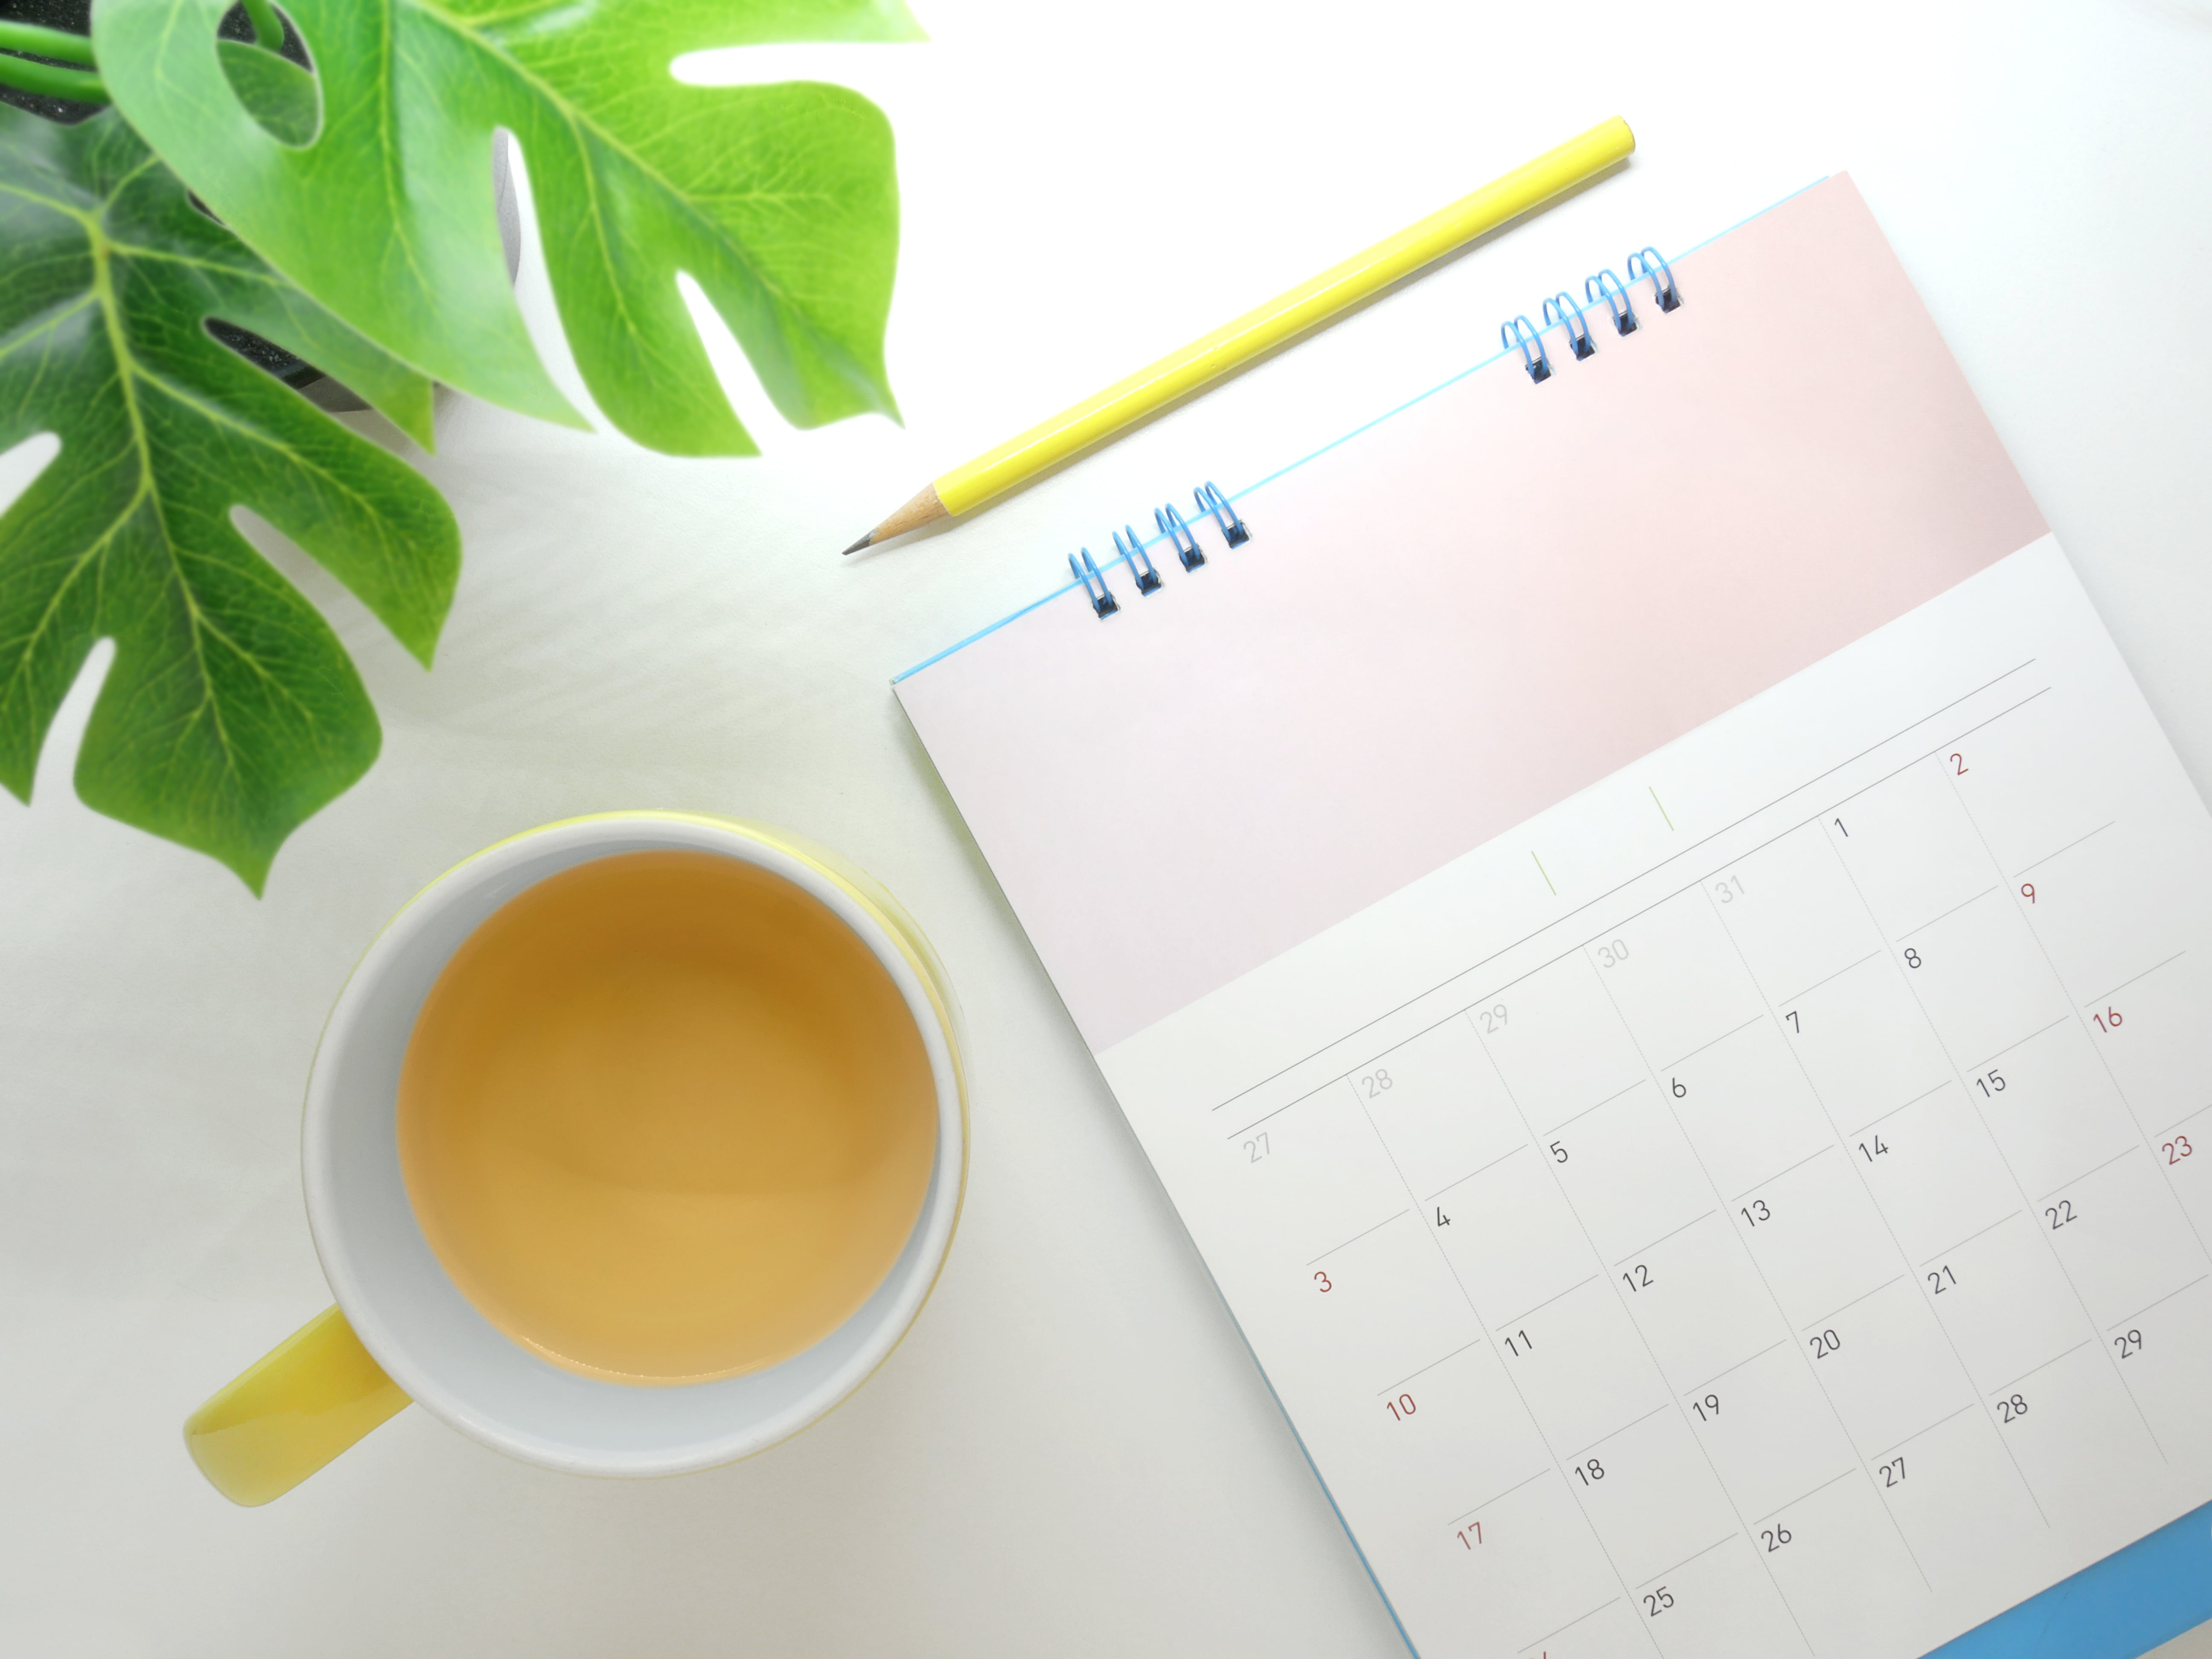 Planting Calendar with a plant on the side